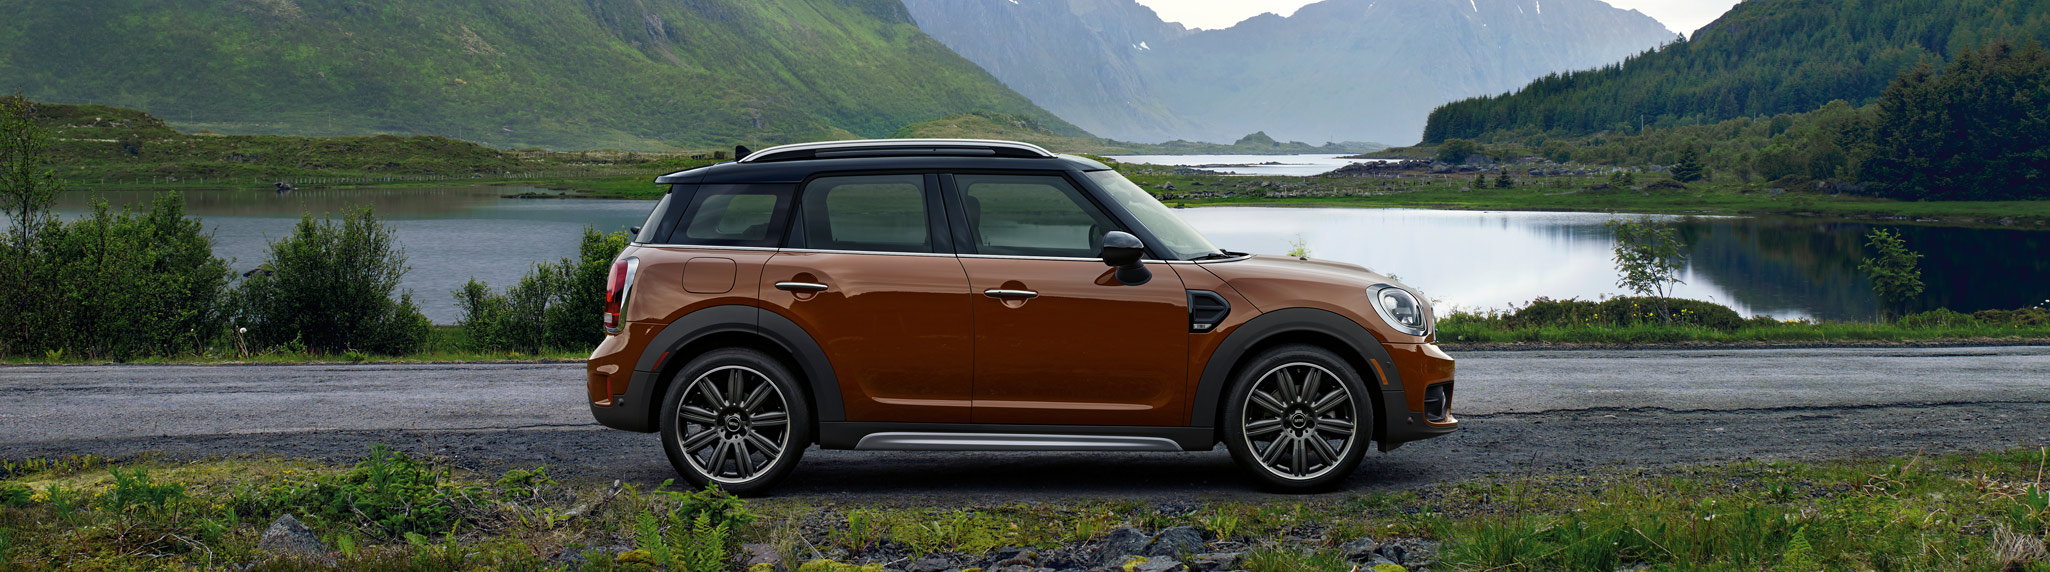 0 9 Apr For Up To 72 Months Plus Available Credits 2750 On New 2018 Mini Cooper Countryman Models